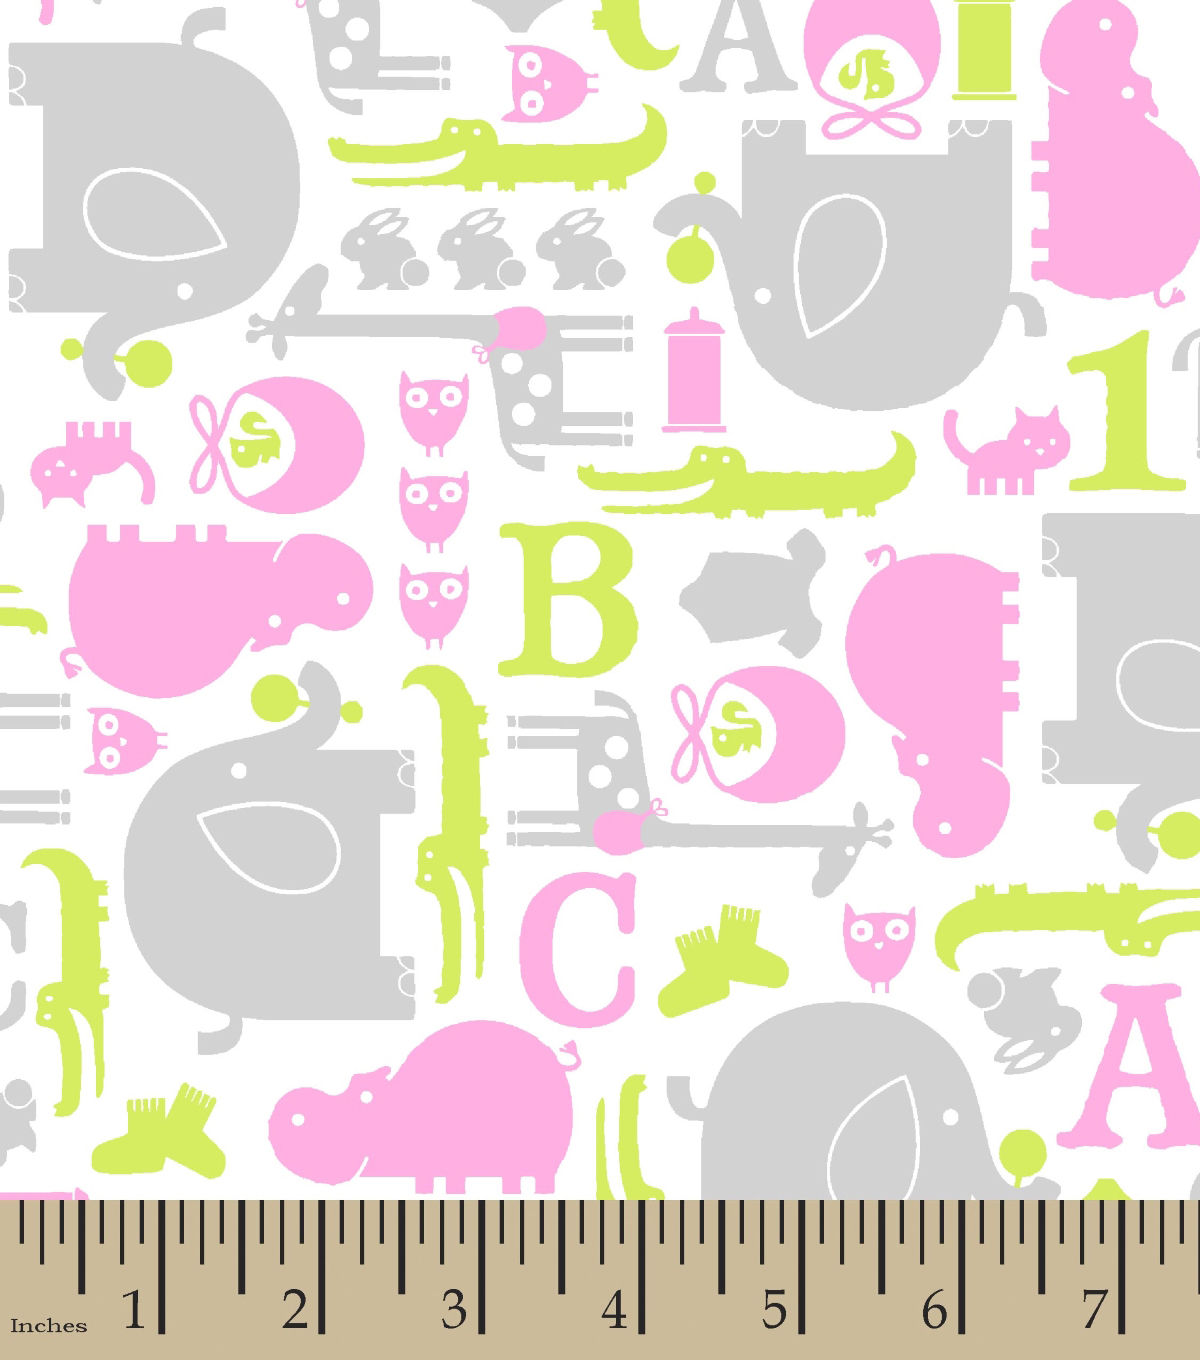 Snuggle Printed Flannel Fabric -Pink, Green & Gray Baby Animals